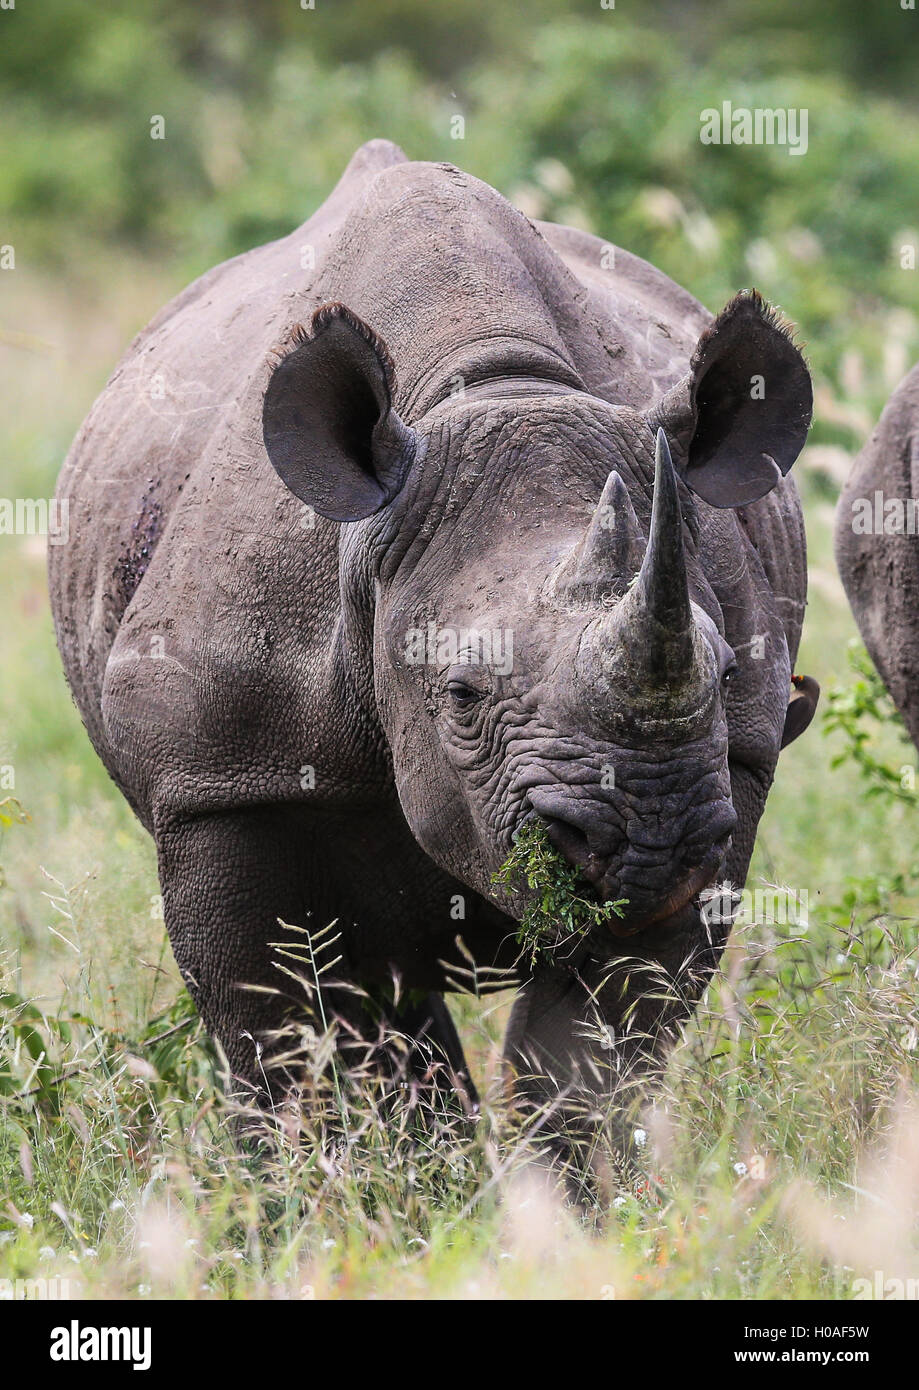 Male Black Rhino grazing at The Kruger National Park South Africa - Stock Image